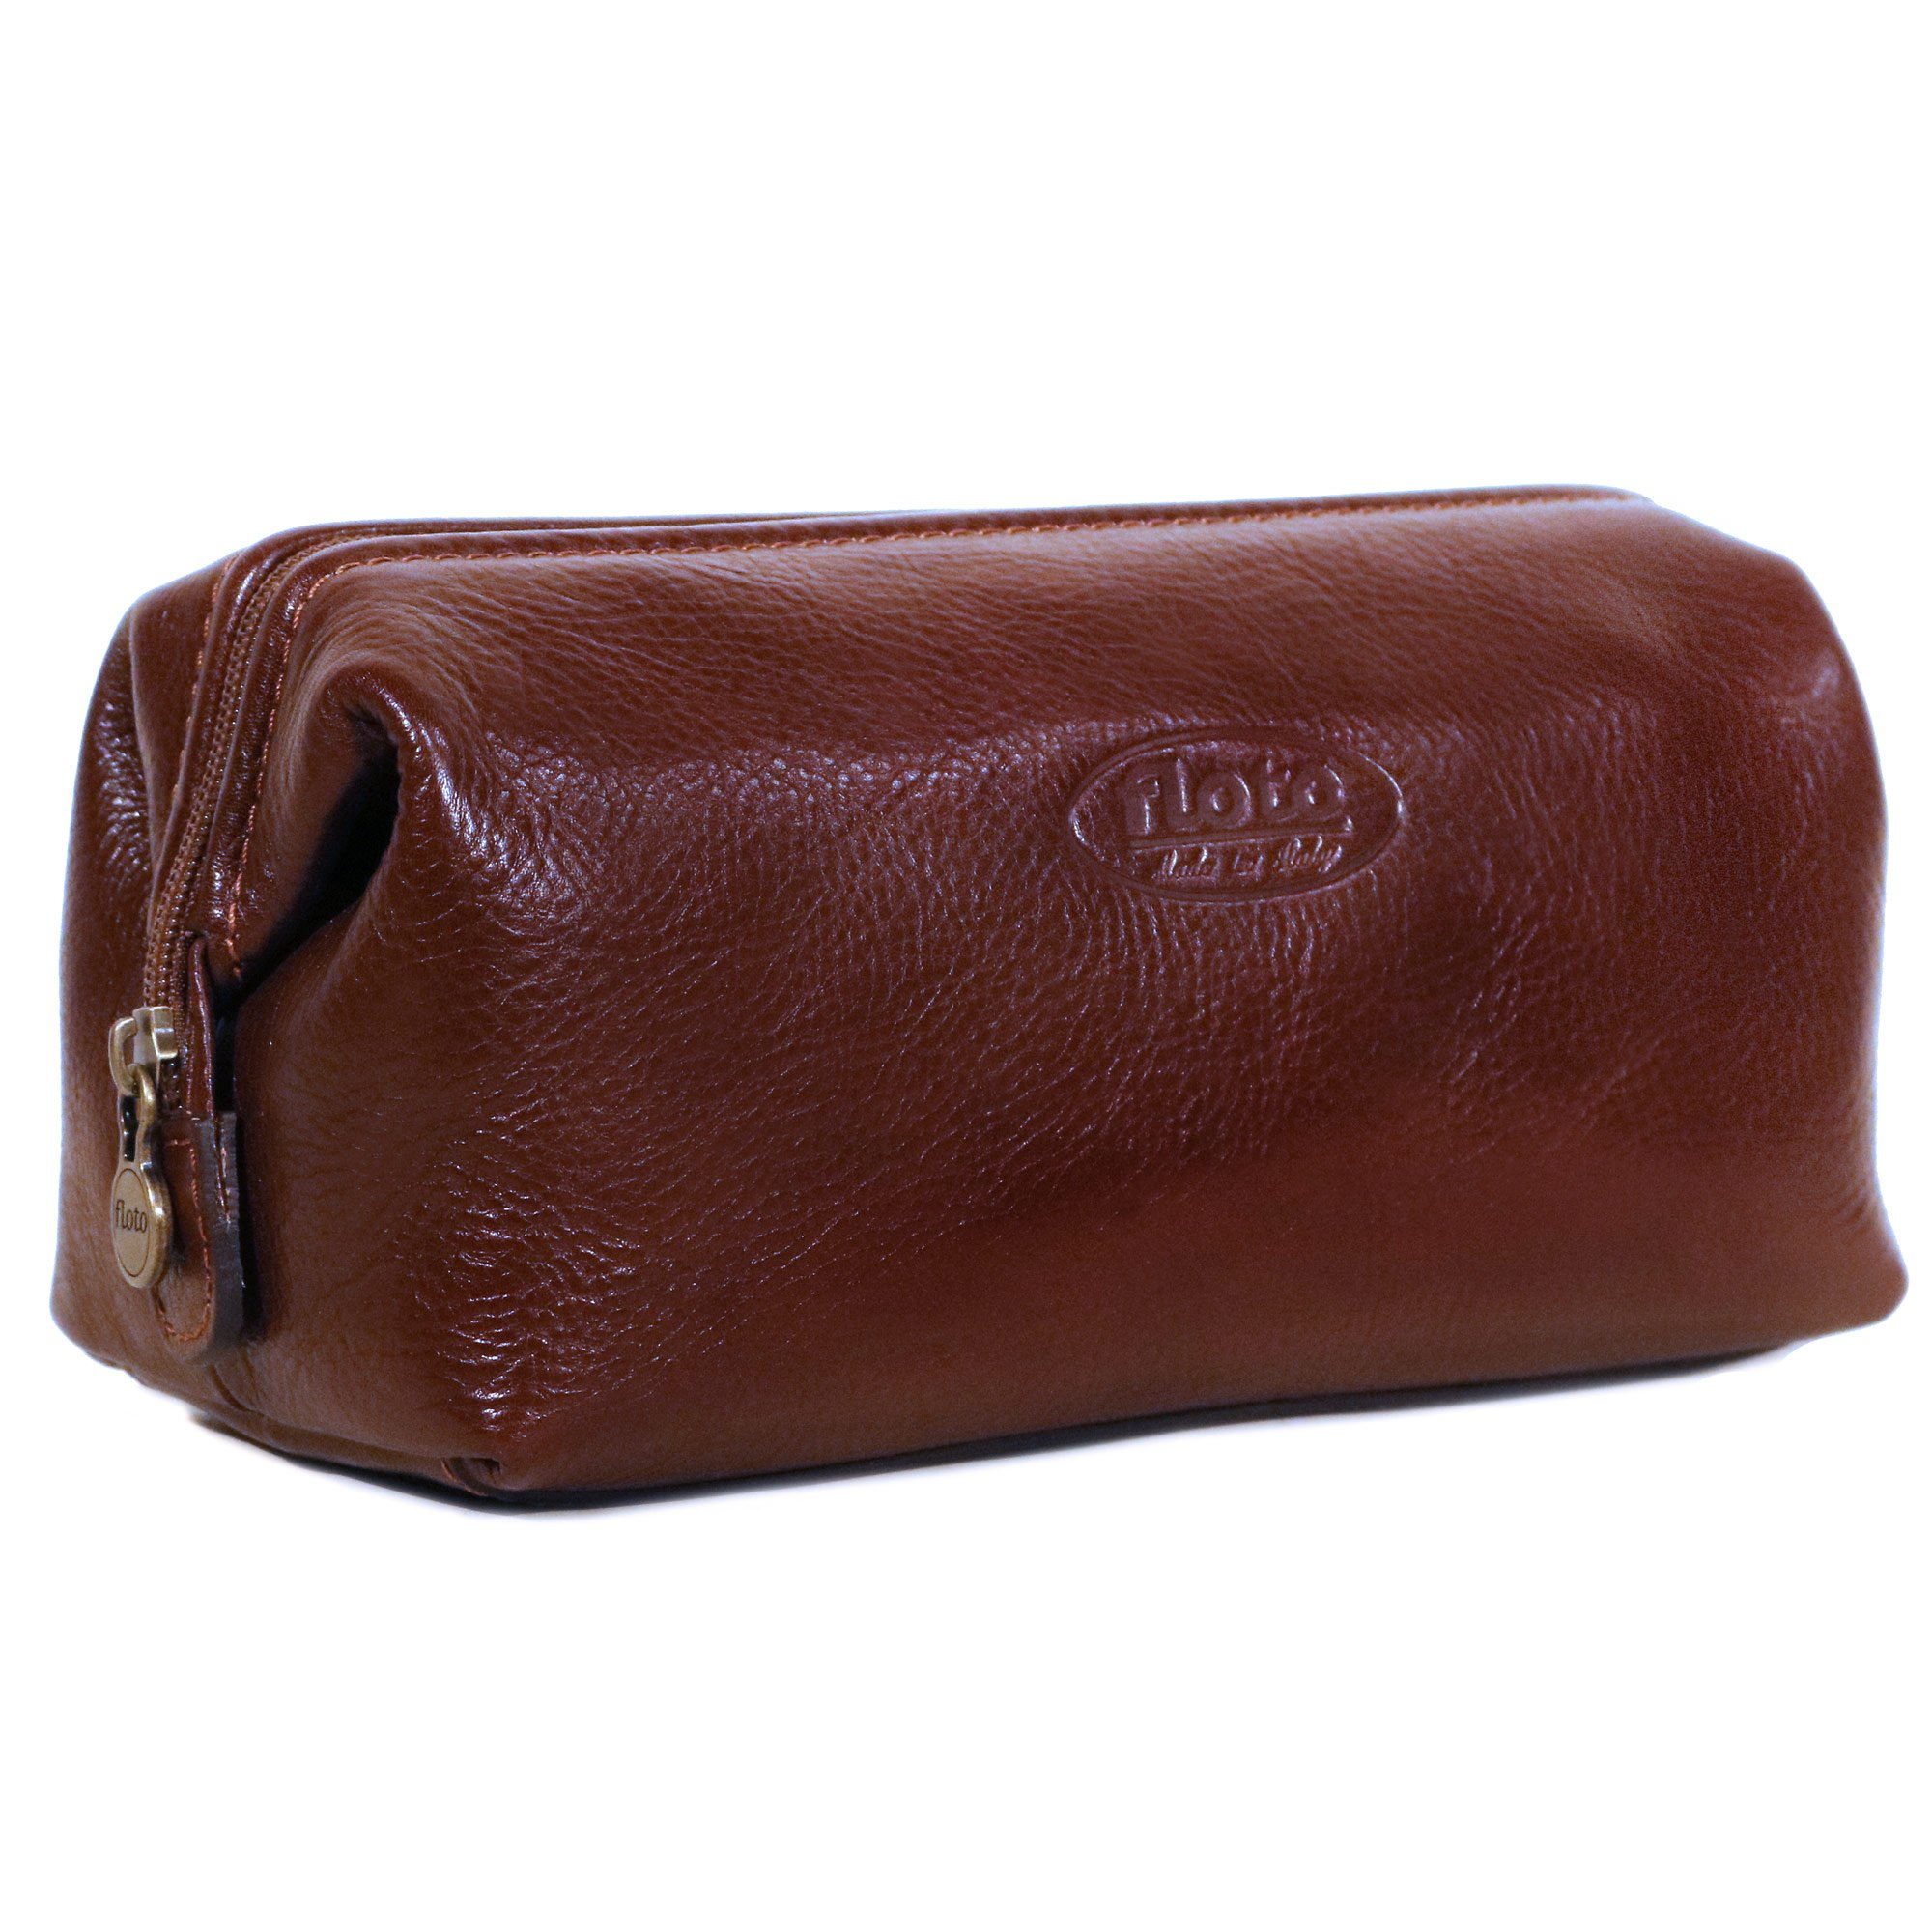 Floto Collection Dopp Kit in Brown Italian Calfskin Leather by Floto